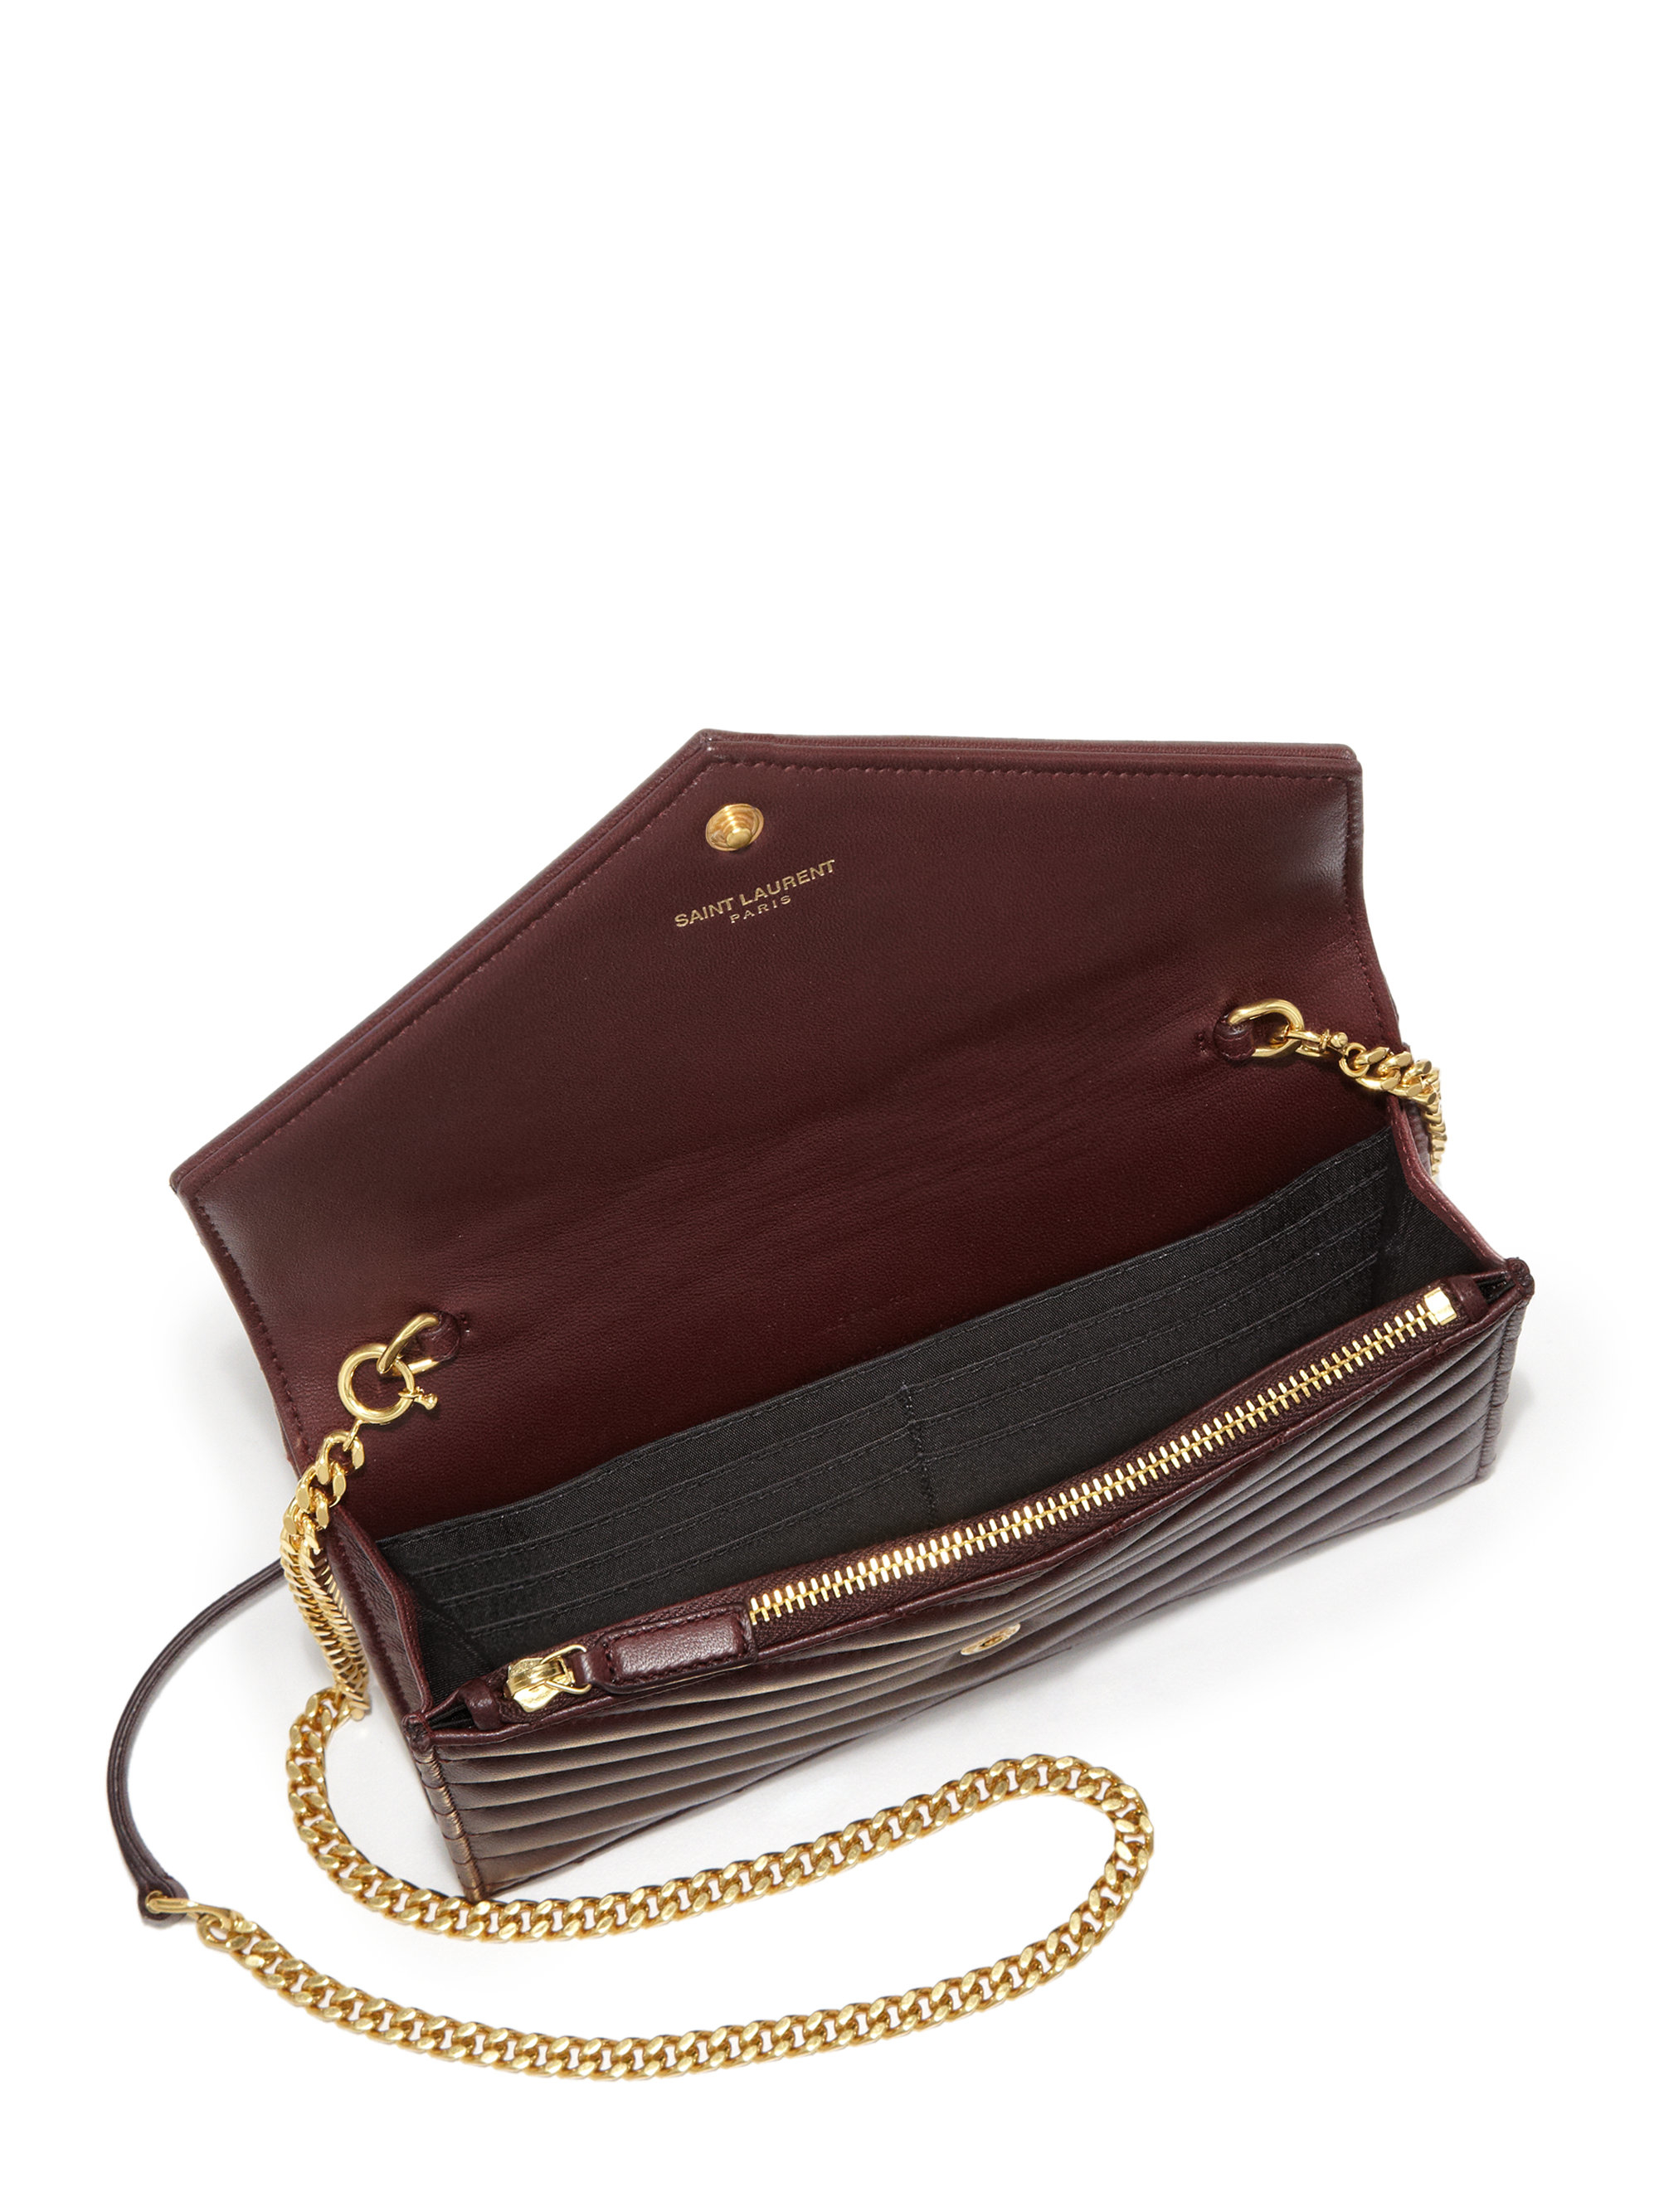 3b9ed9ff97651 ysl clutch gold chain - monogram saint laurent chain wallet in silver  grained metallic leather